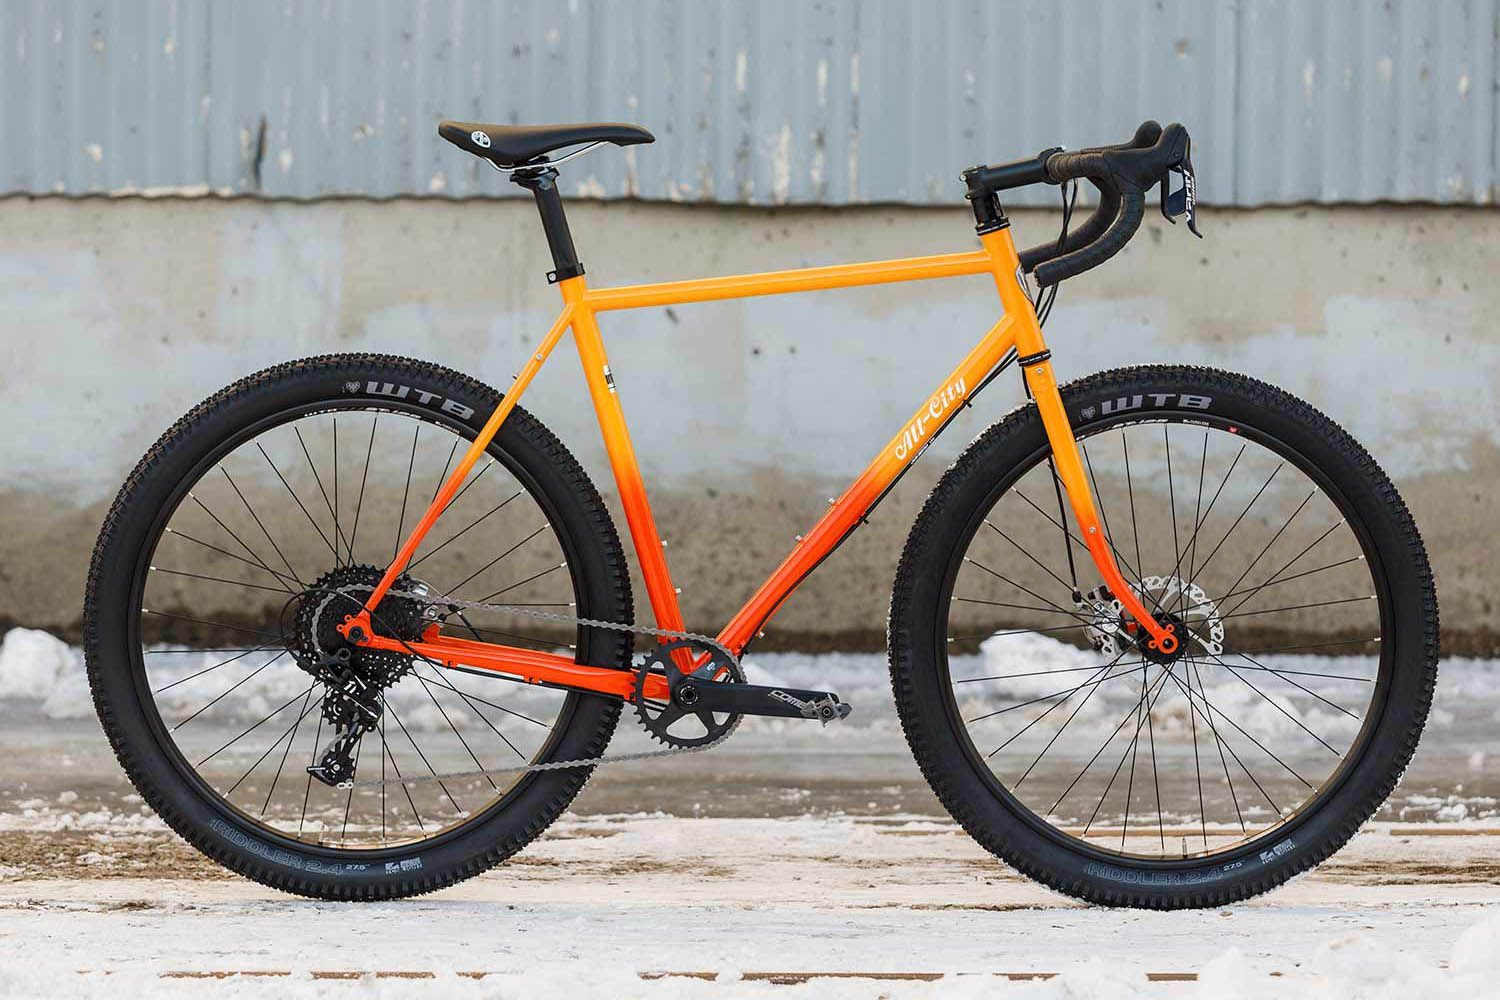 Announcing The All City Gorilla Monsoon Best Road Bike Cycling